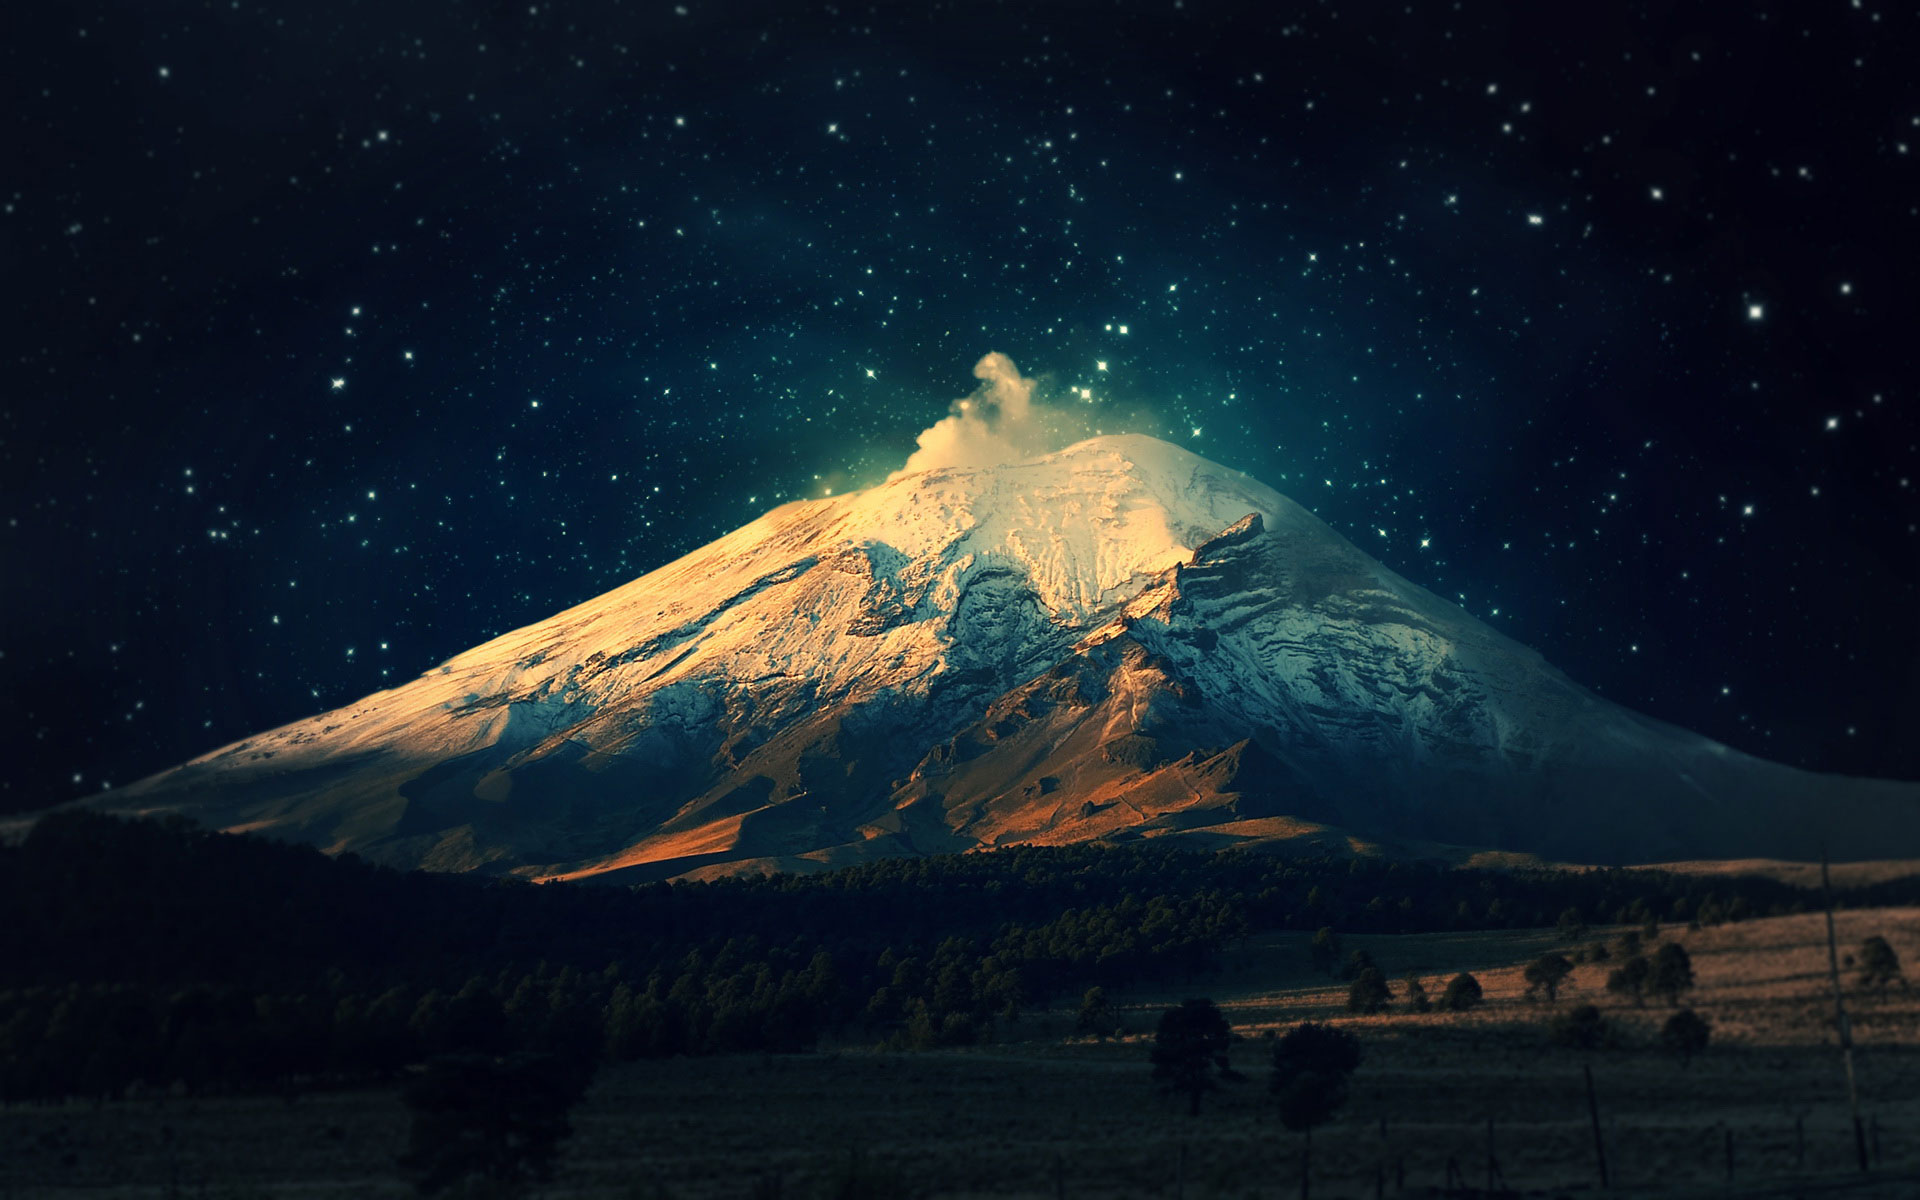 Awesome Wallpapers For Android: 70 QHD(1440p) Wallpapers To Show Off That Awesome Display